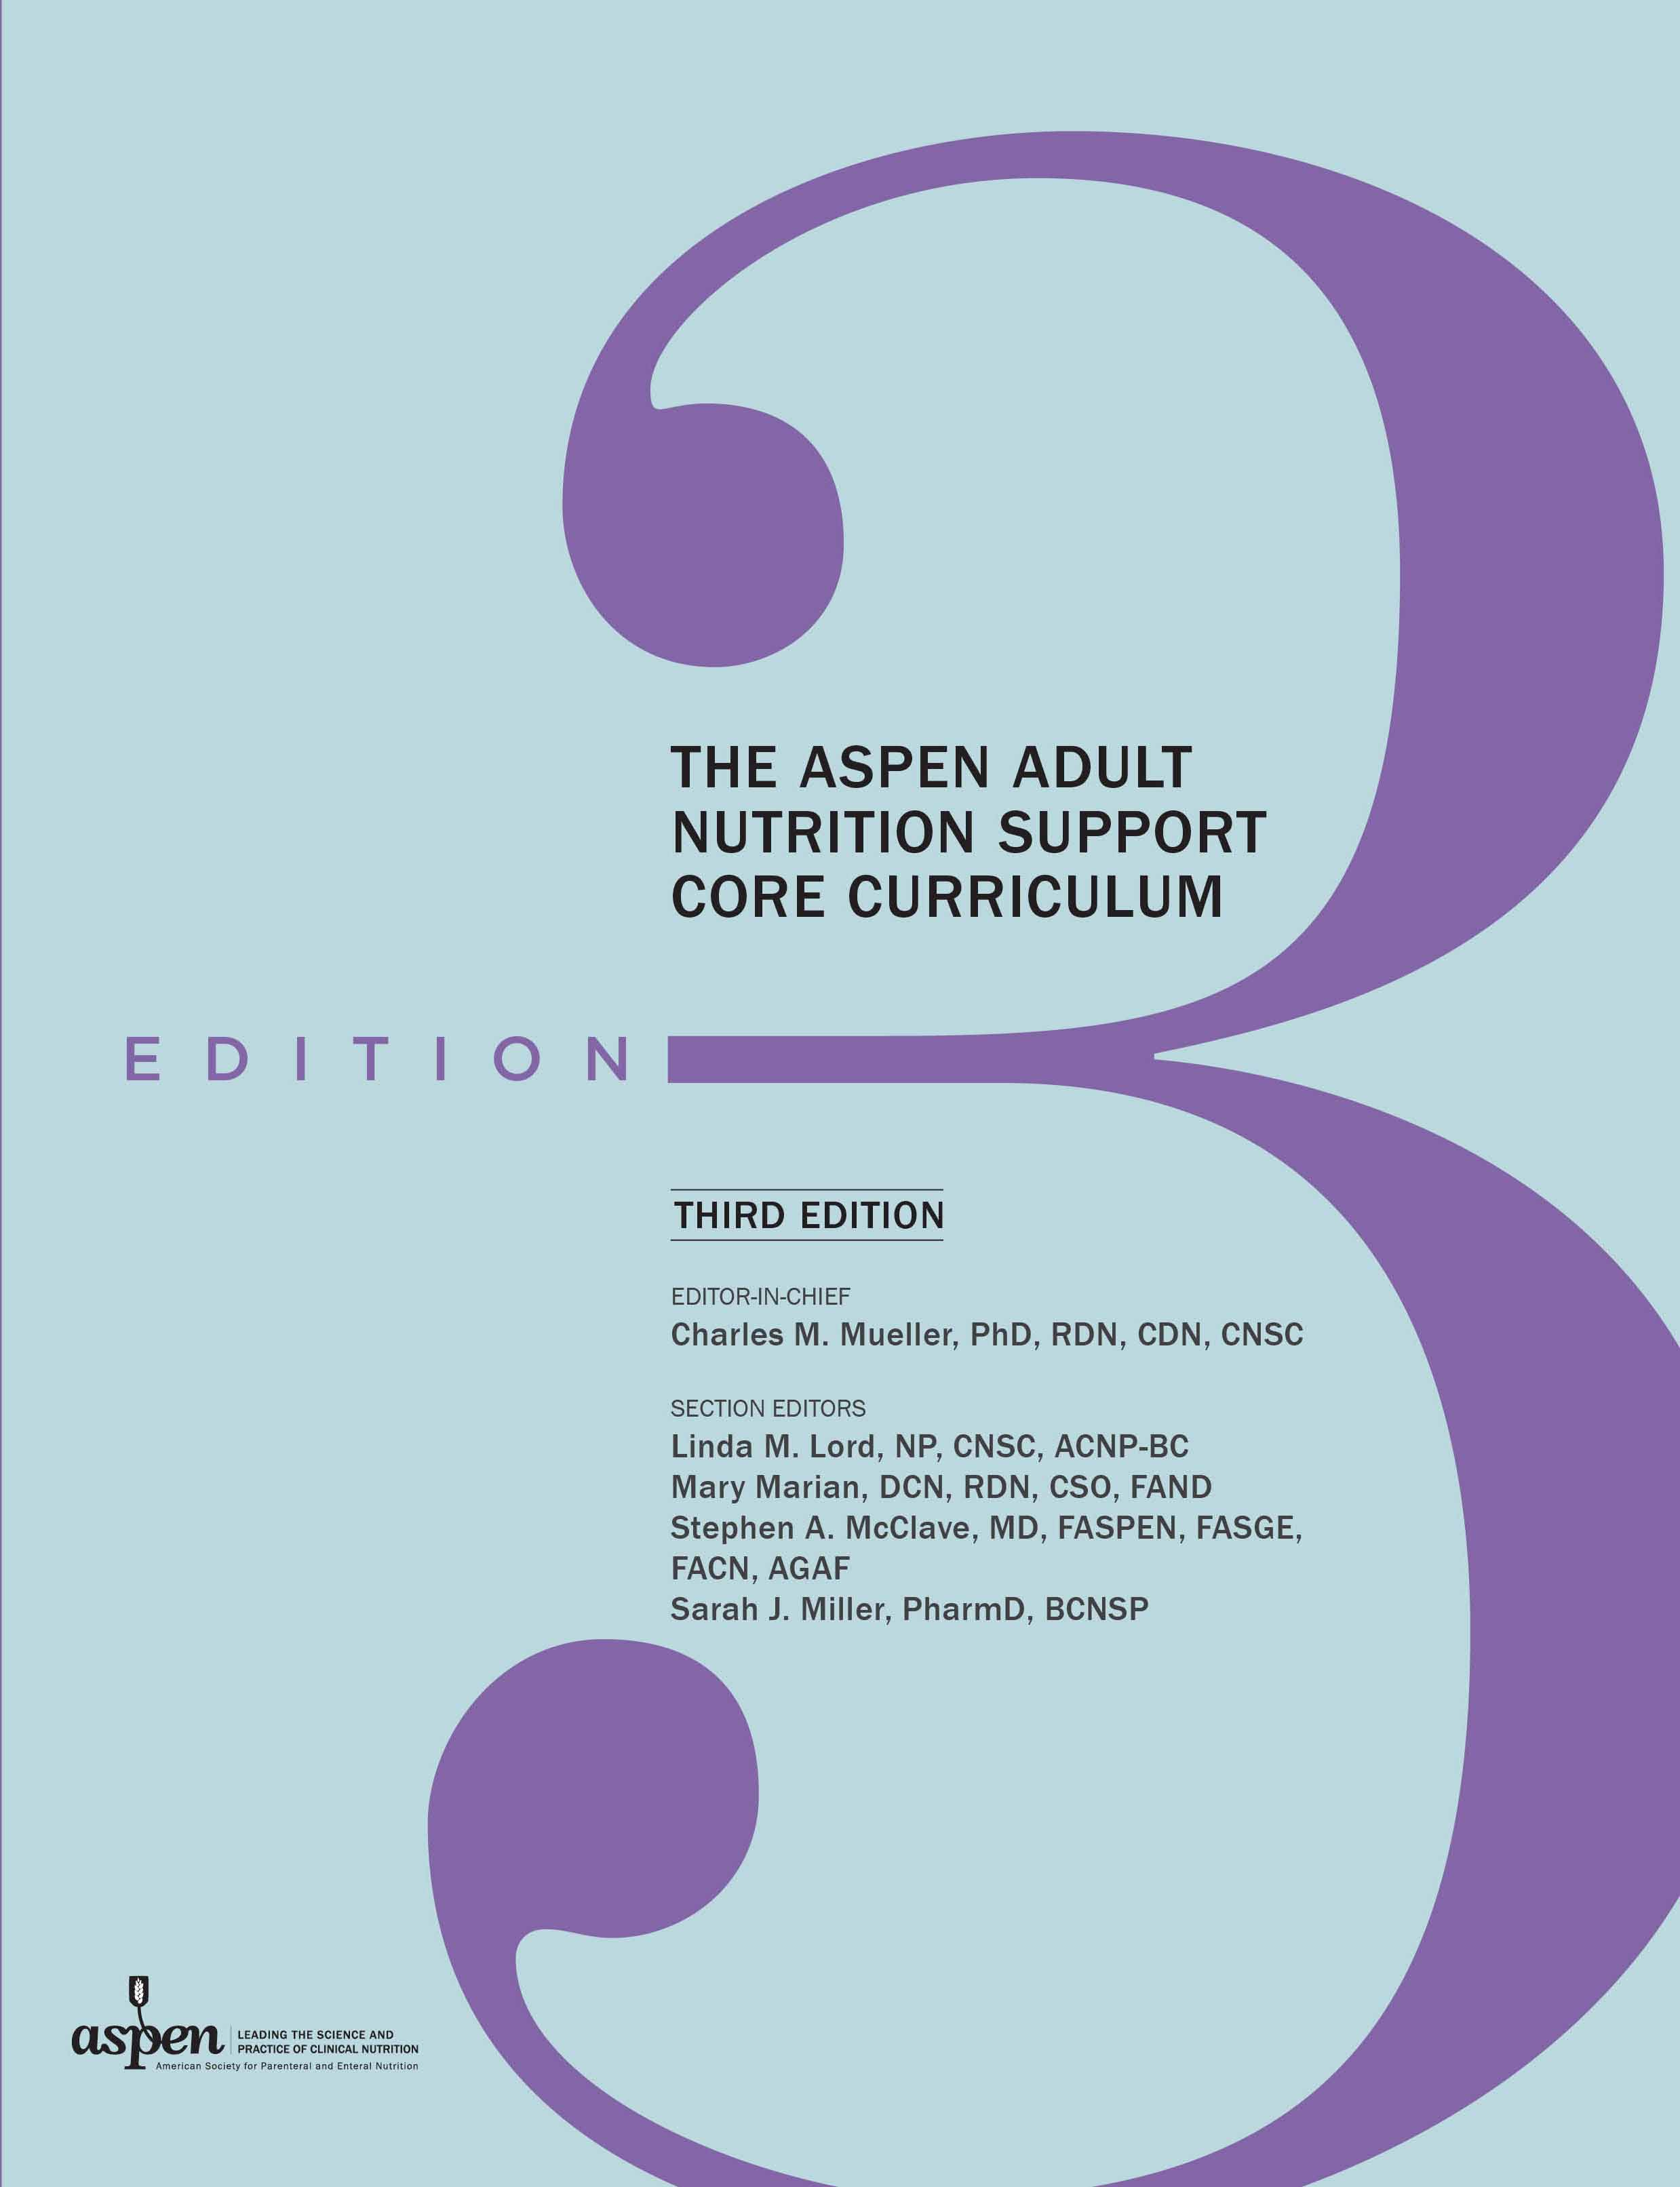 The ASPEN Adult Nutrition Support Core Curriculum, 3rd Edition